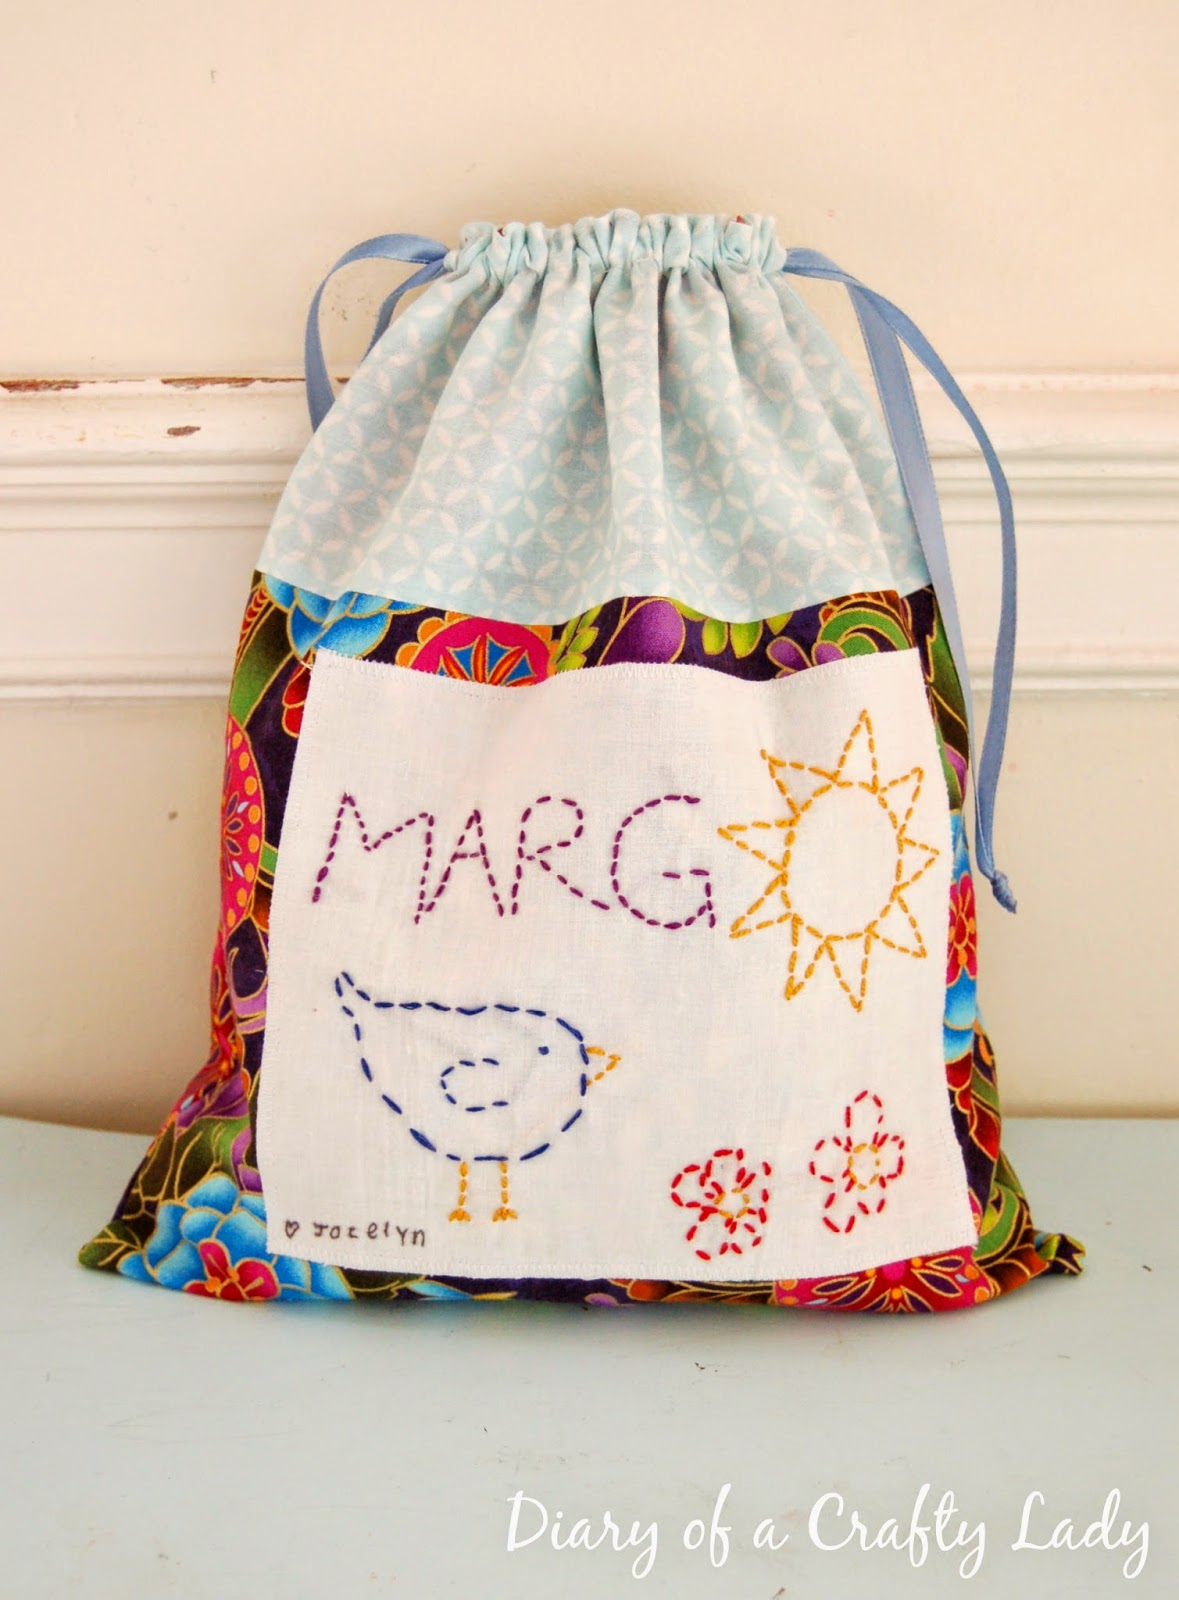 You Could Make A Whole Set Of Customized Drawstring Bags For Your Child S Own Little Toys Or One In Any Size As Great Way To Deliver Gift